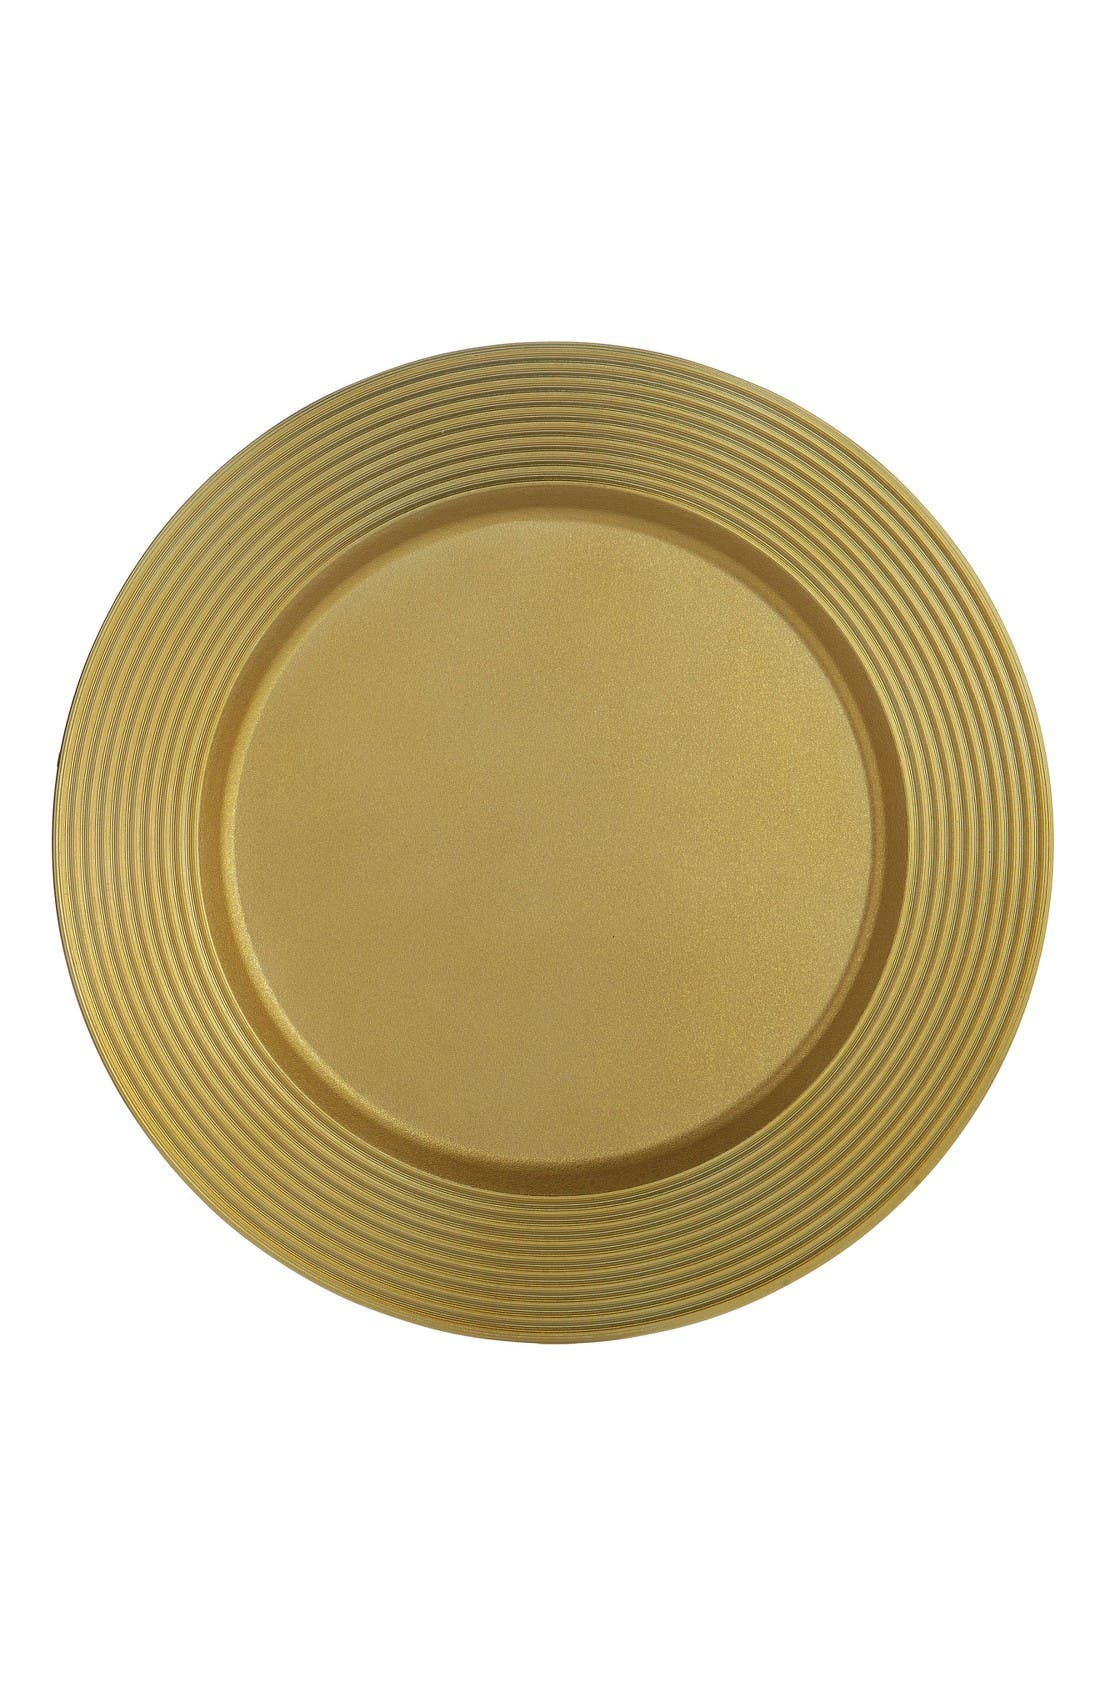 Wheat Charger Plate,                         Main,                         color, Gold